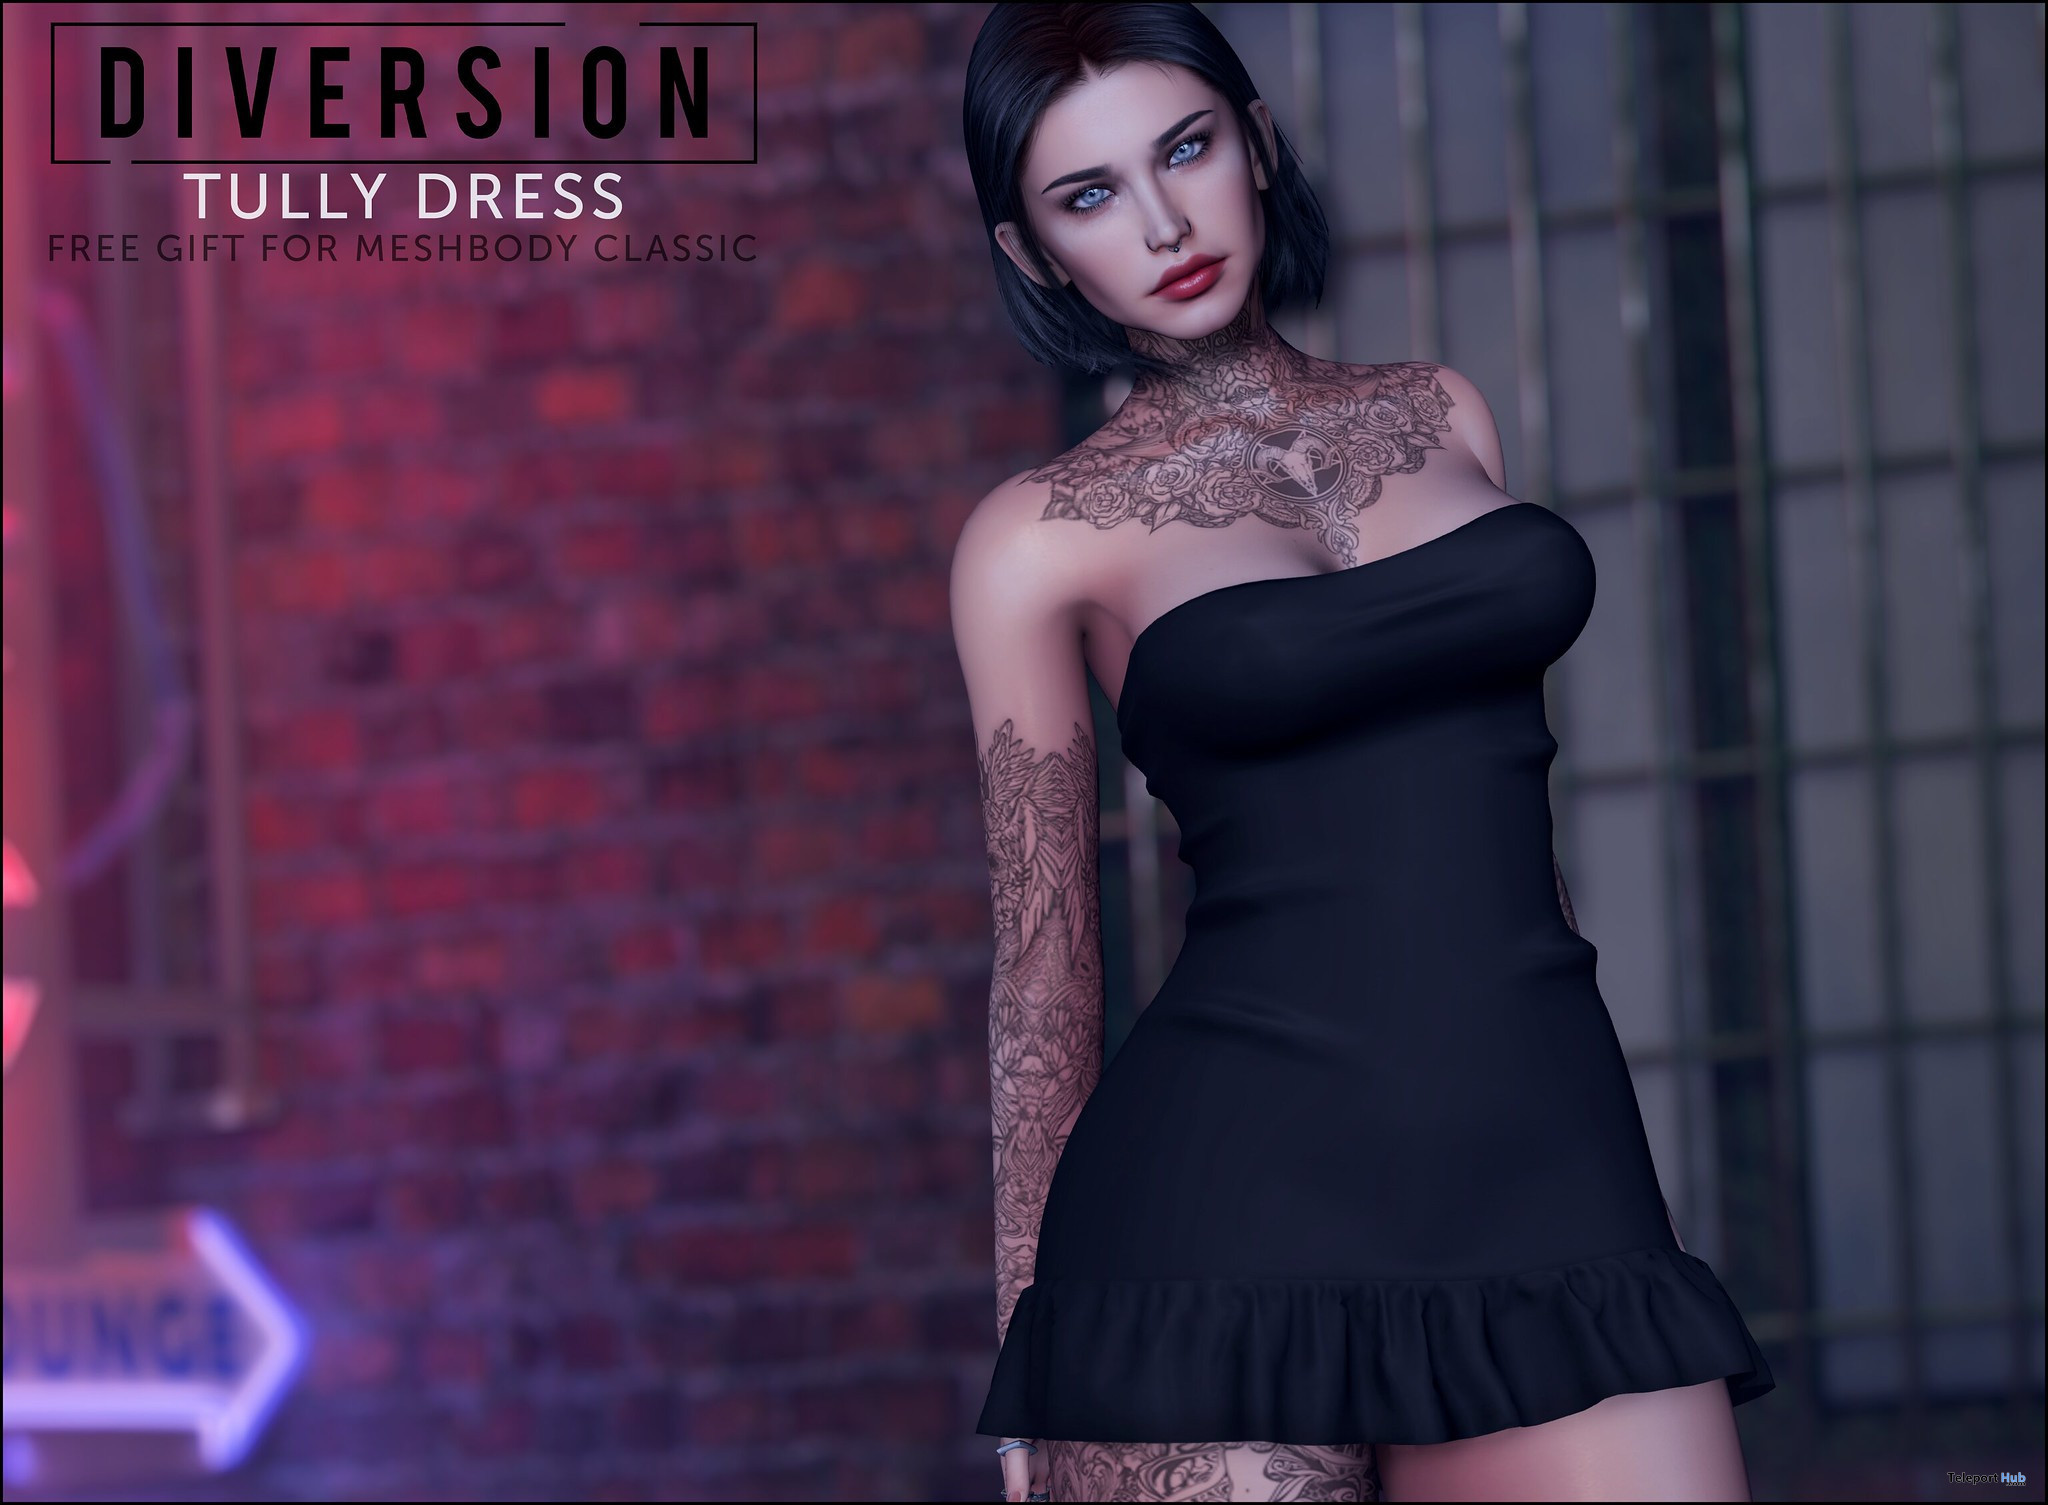 Tully Dress For MeshBody Classic August 2021 Gift by Diversion - Teleport Hub - teleporthub.com